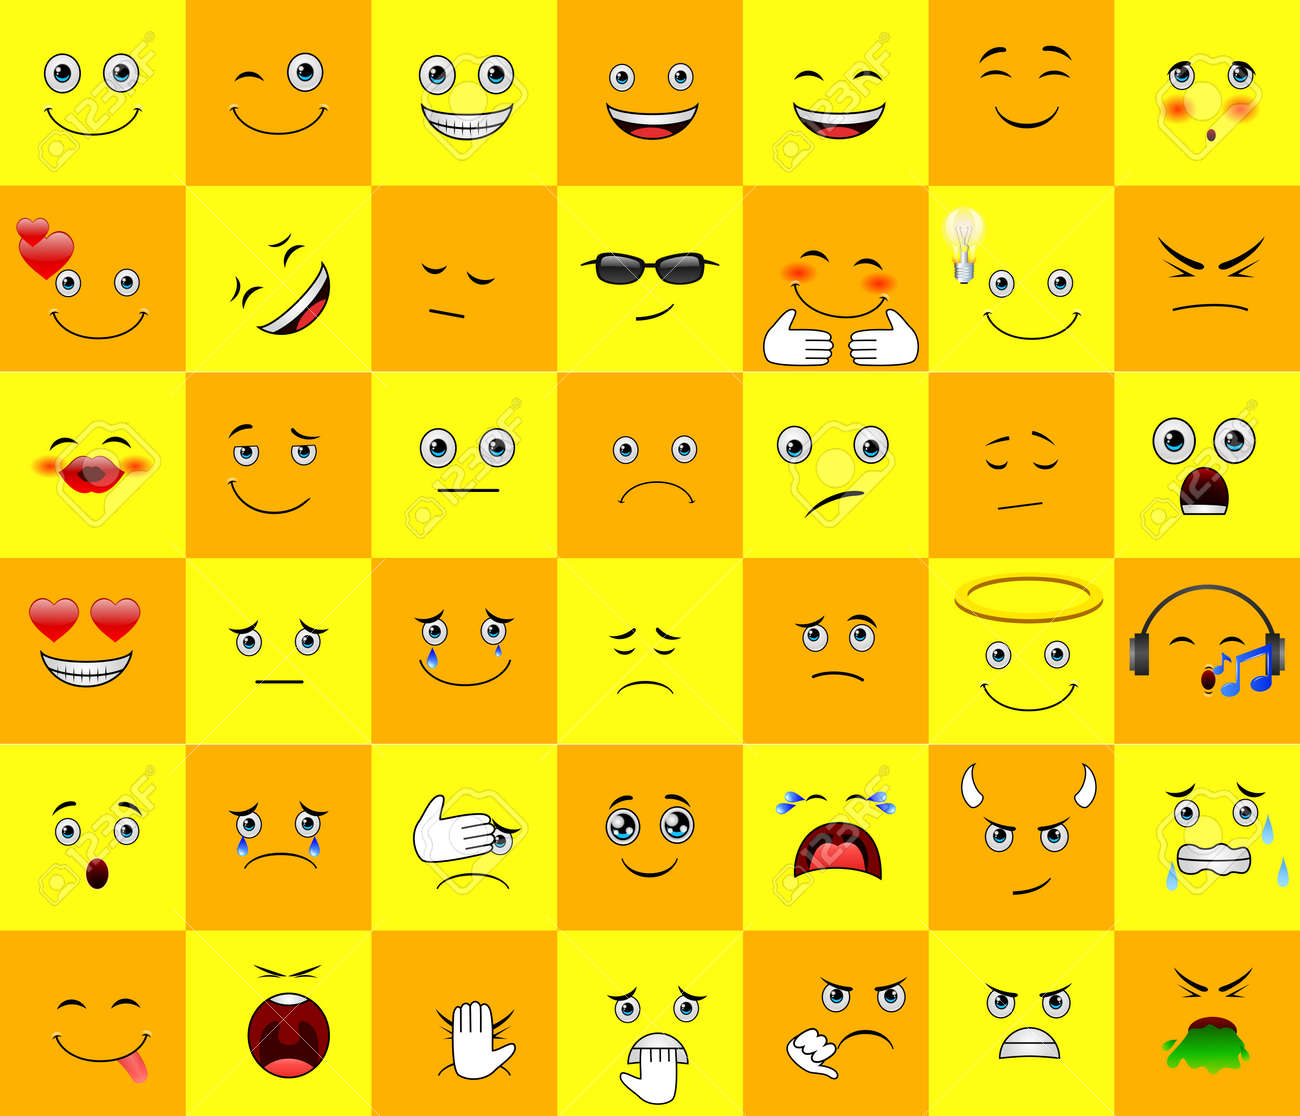 Emoticons or smileys with funny and happy facial expressions in yellow blank space background for text or presentation. - 154220392